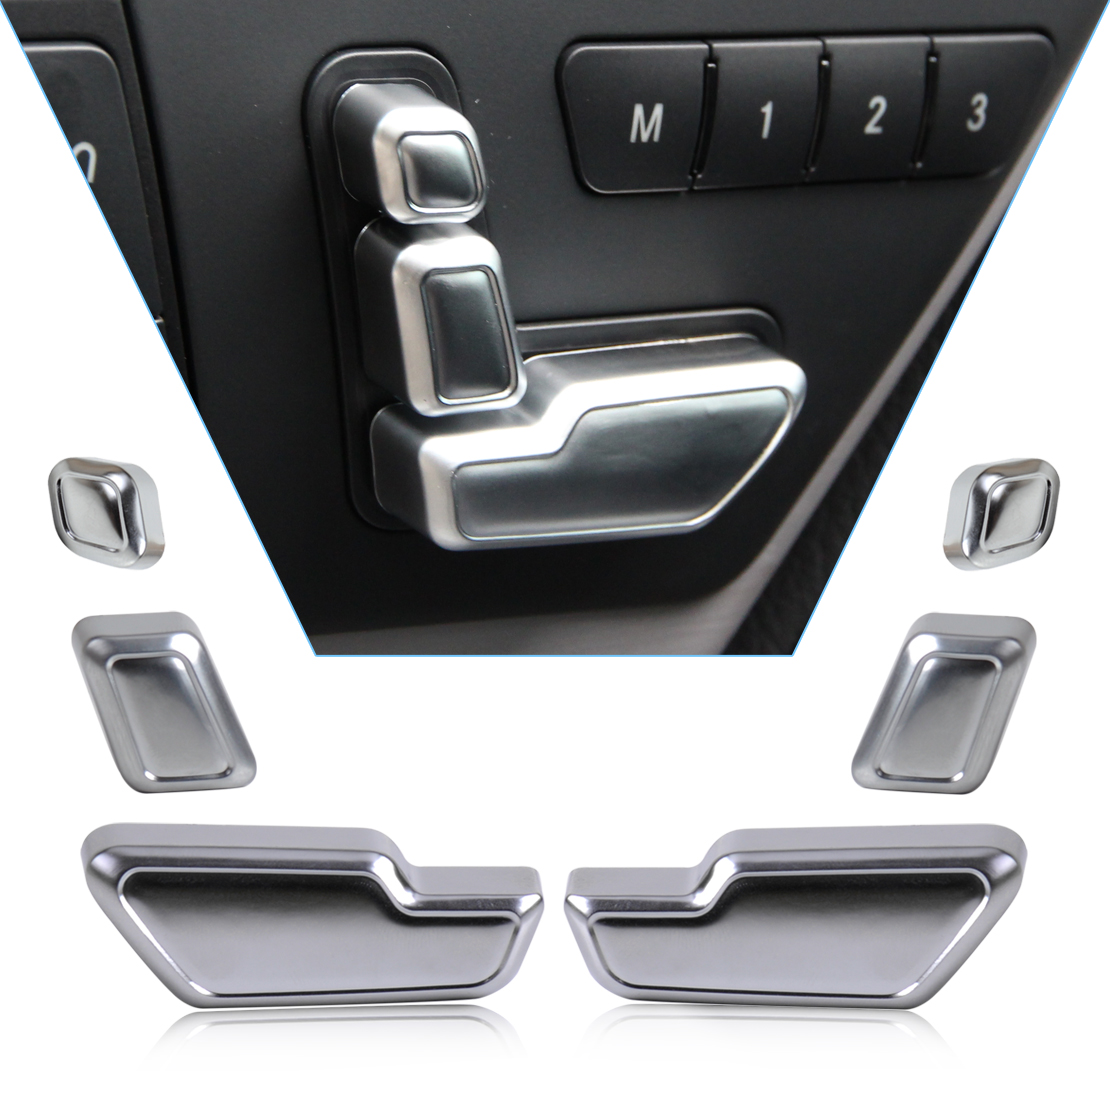 dwcx chrome door seat adjust button switch cover trim for mercedes benz c e gl cls class w212. Black Bedroom Furniture Sets. Home Design Ideas